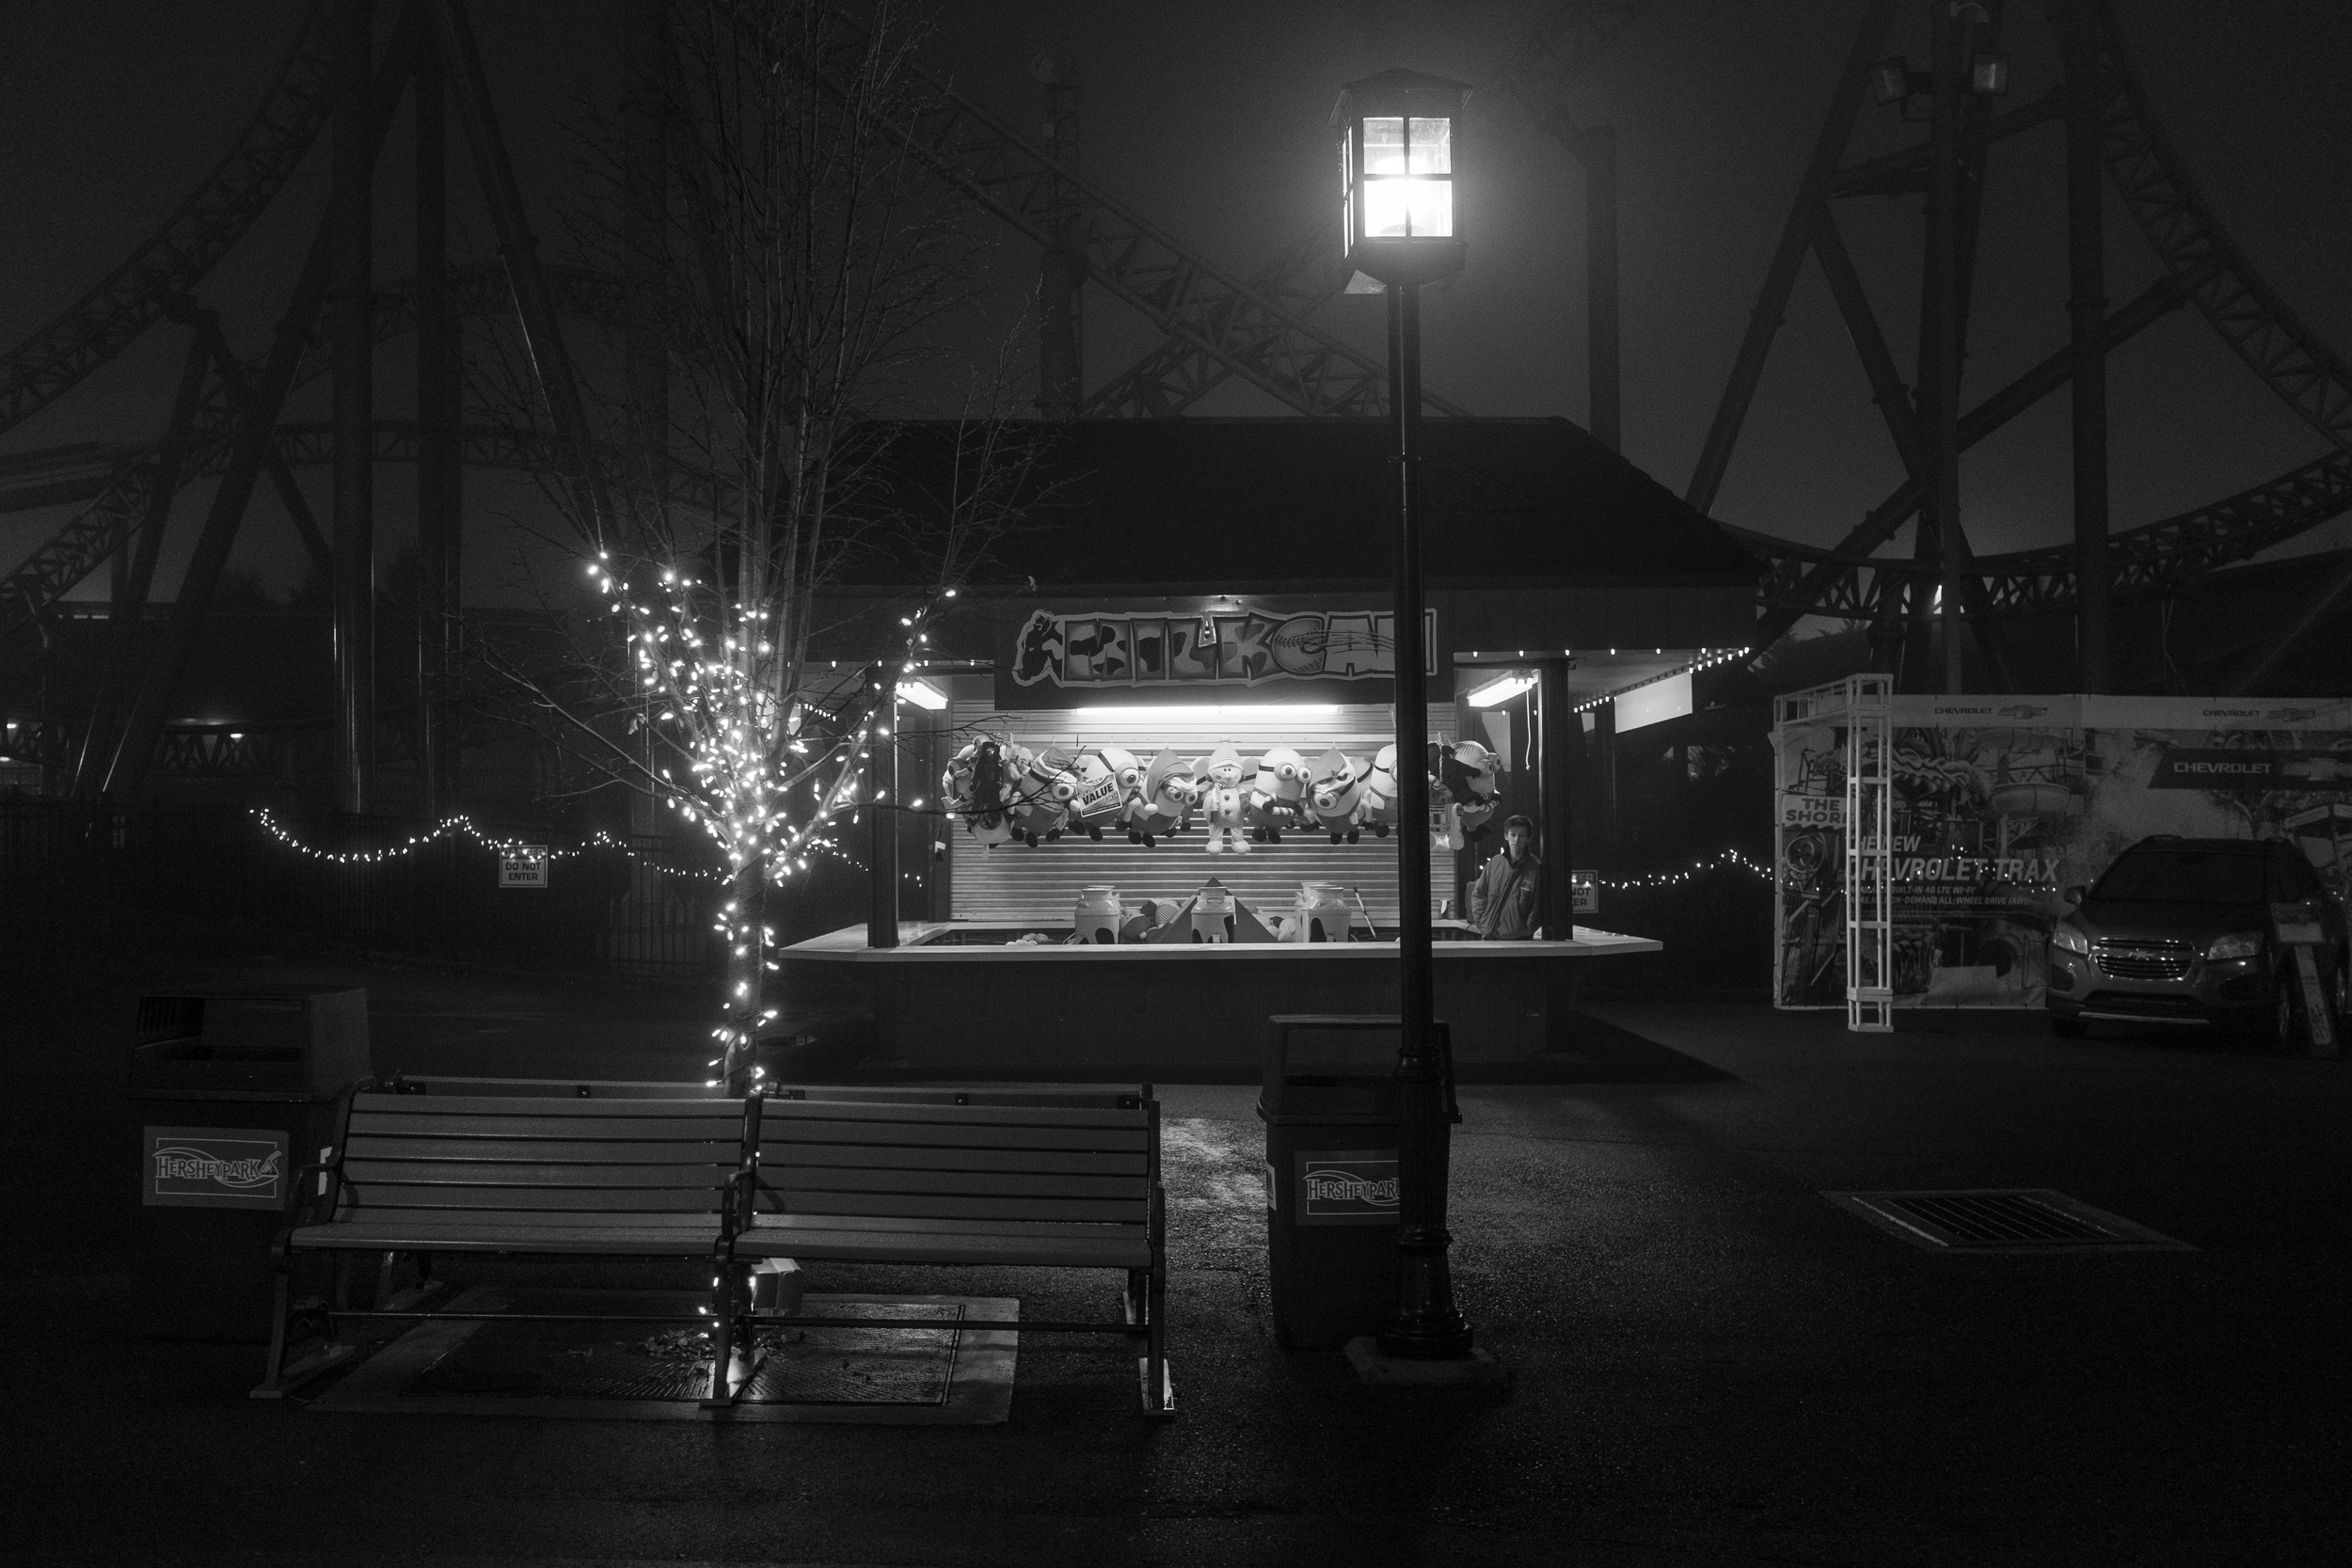 The park wasn't completely empty, but the weather did keep many people away which gave the park an ominous feel. Fujifilm X100S, 1/60 @f2.8, ISO 1600.